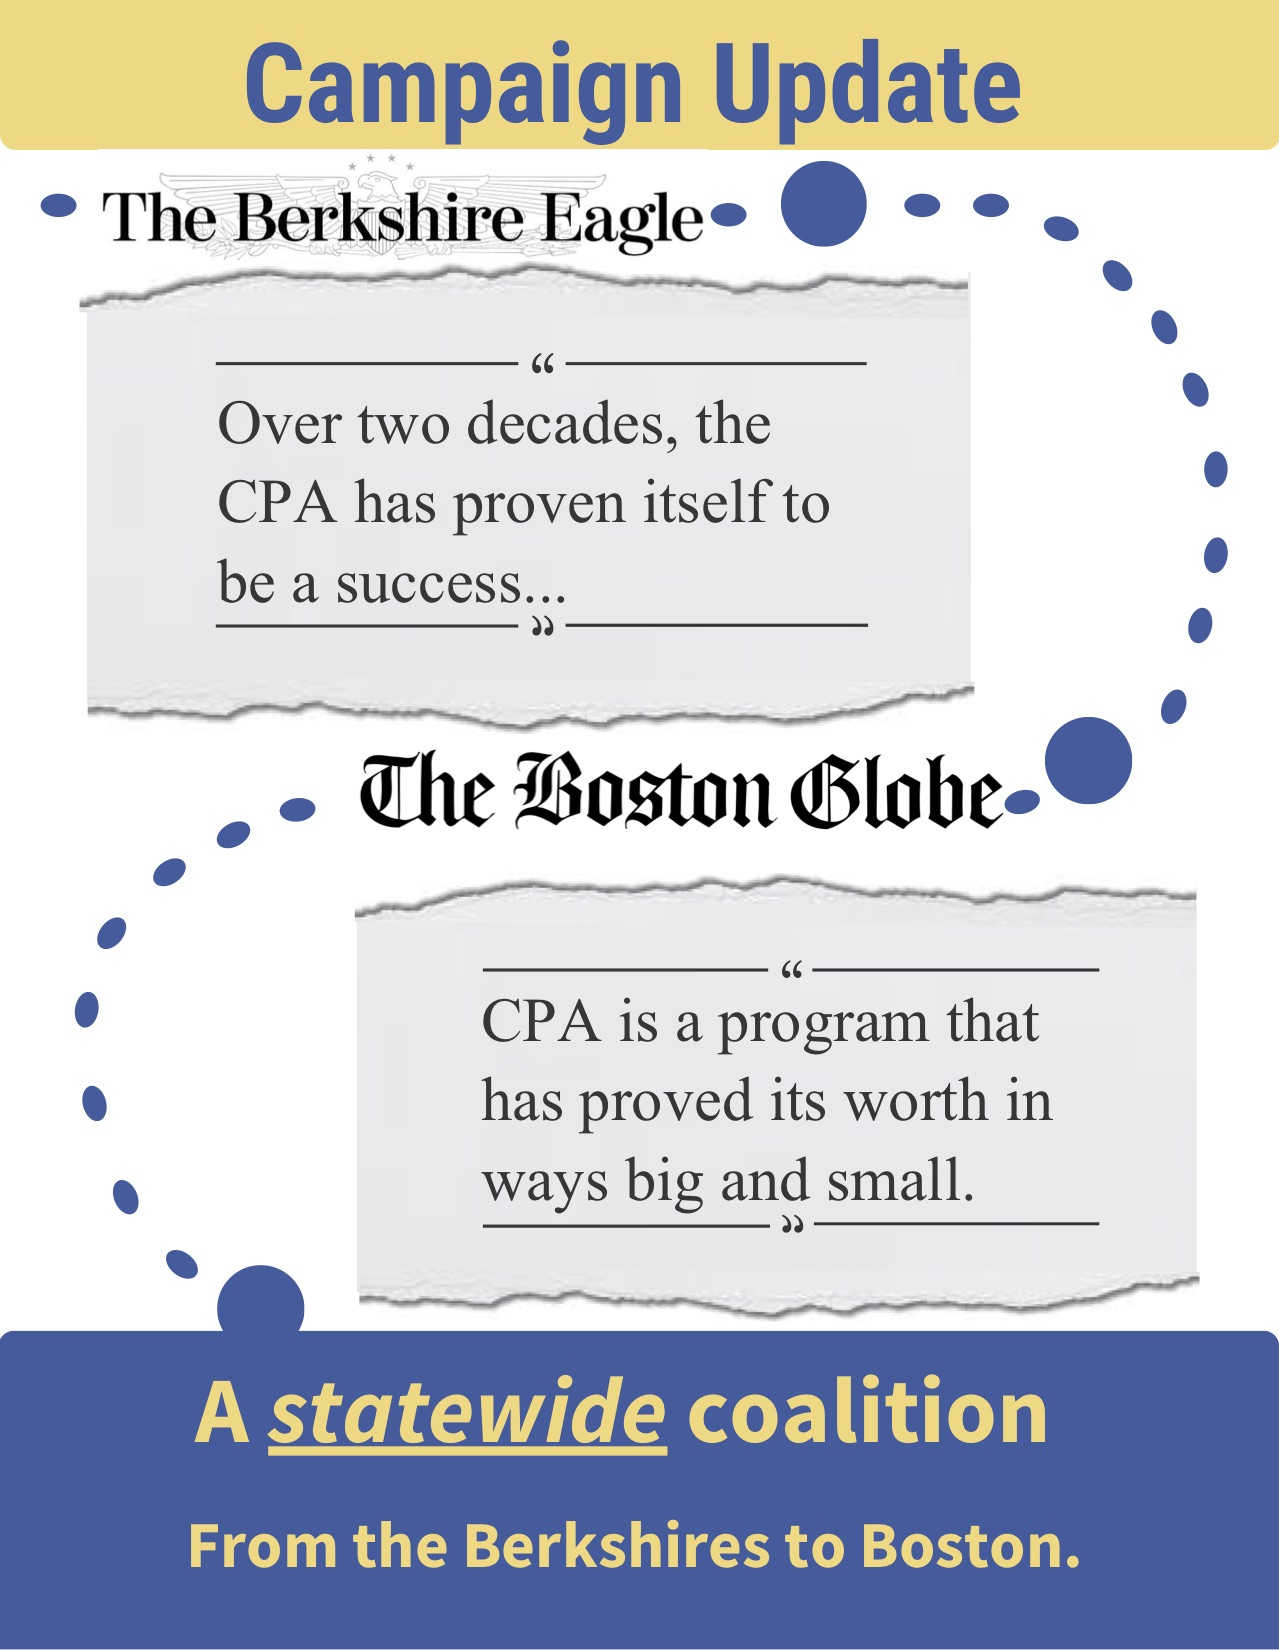 Statewide Coalition - Click image to access.